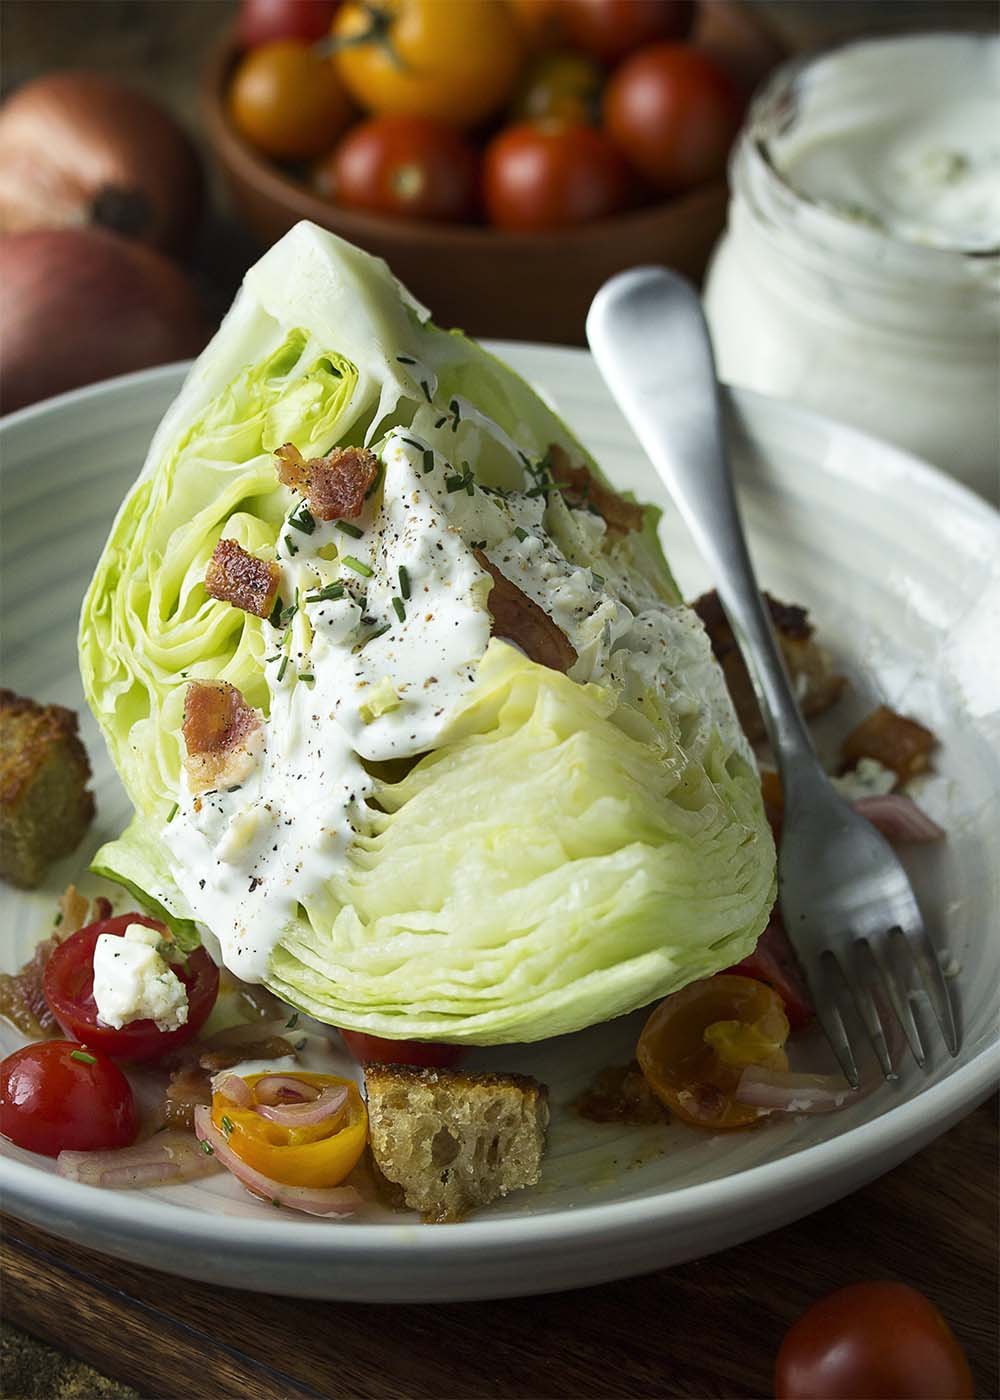 A composed plate of classic wedge salad, blue cheese dressing dripping down the sides of the wedge. Bacon, croutons, and tomatoes scattered about the plate.